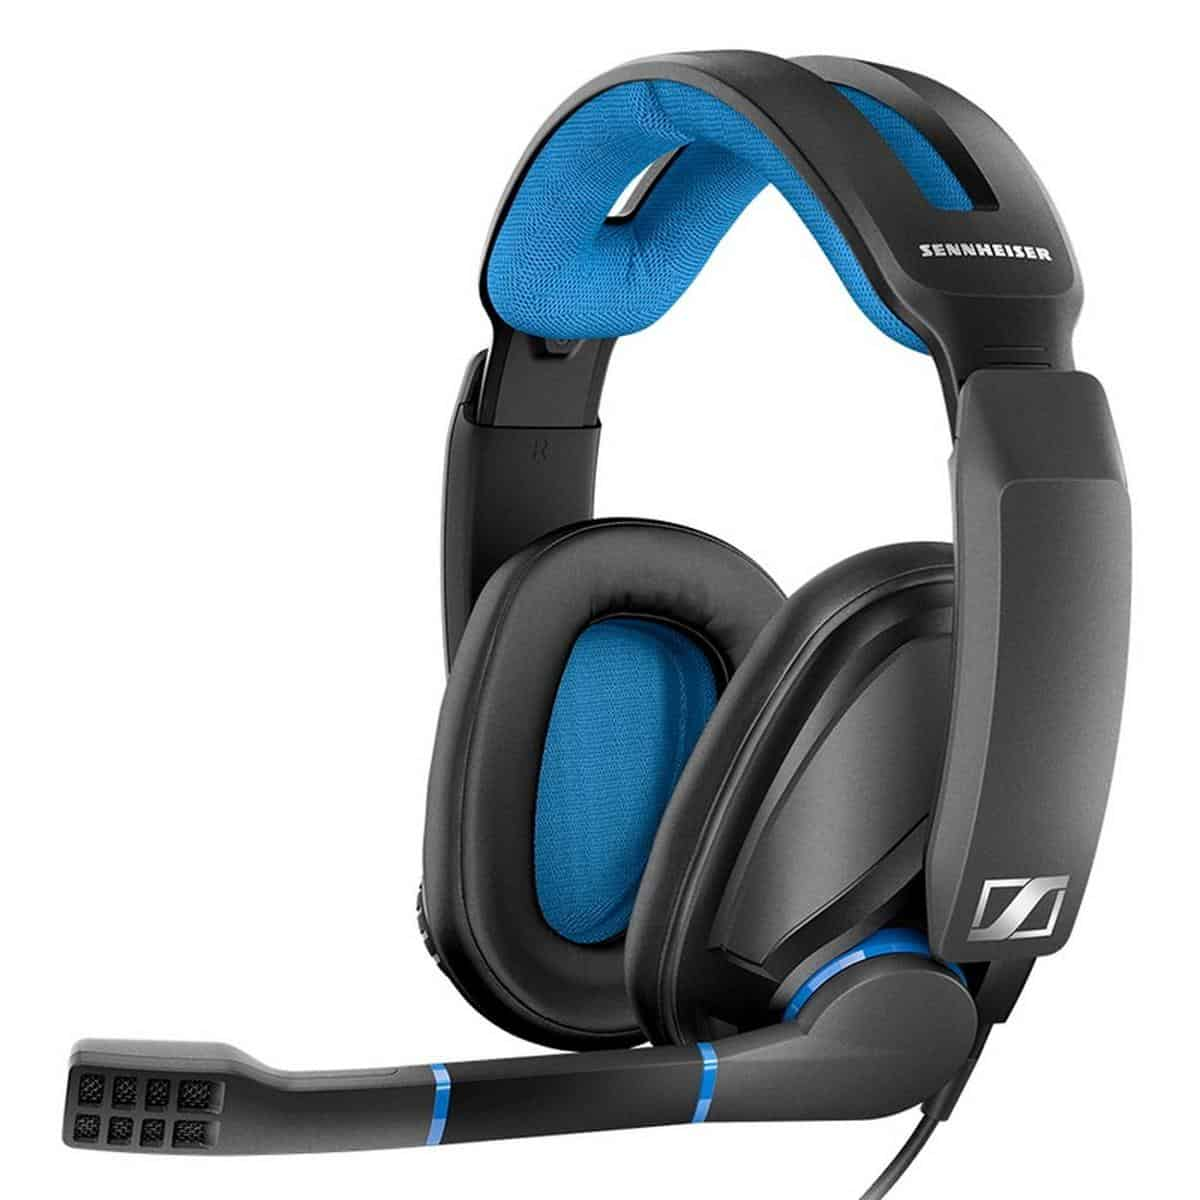 Sennheiser GSP 300 | Best Gaming Headset On Amazon